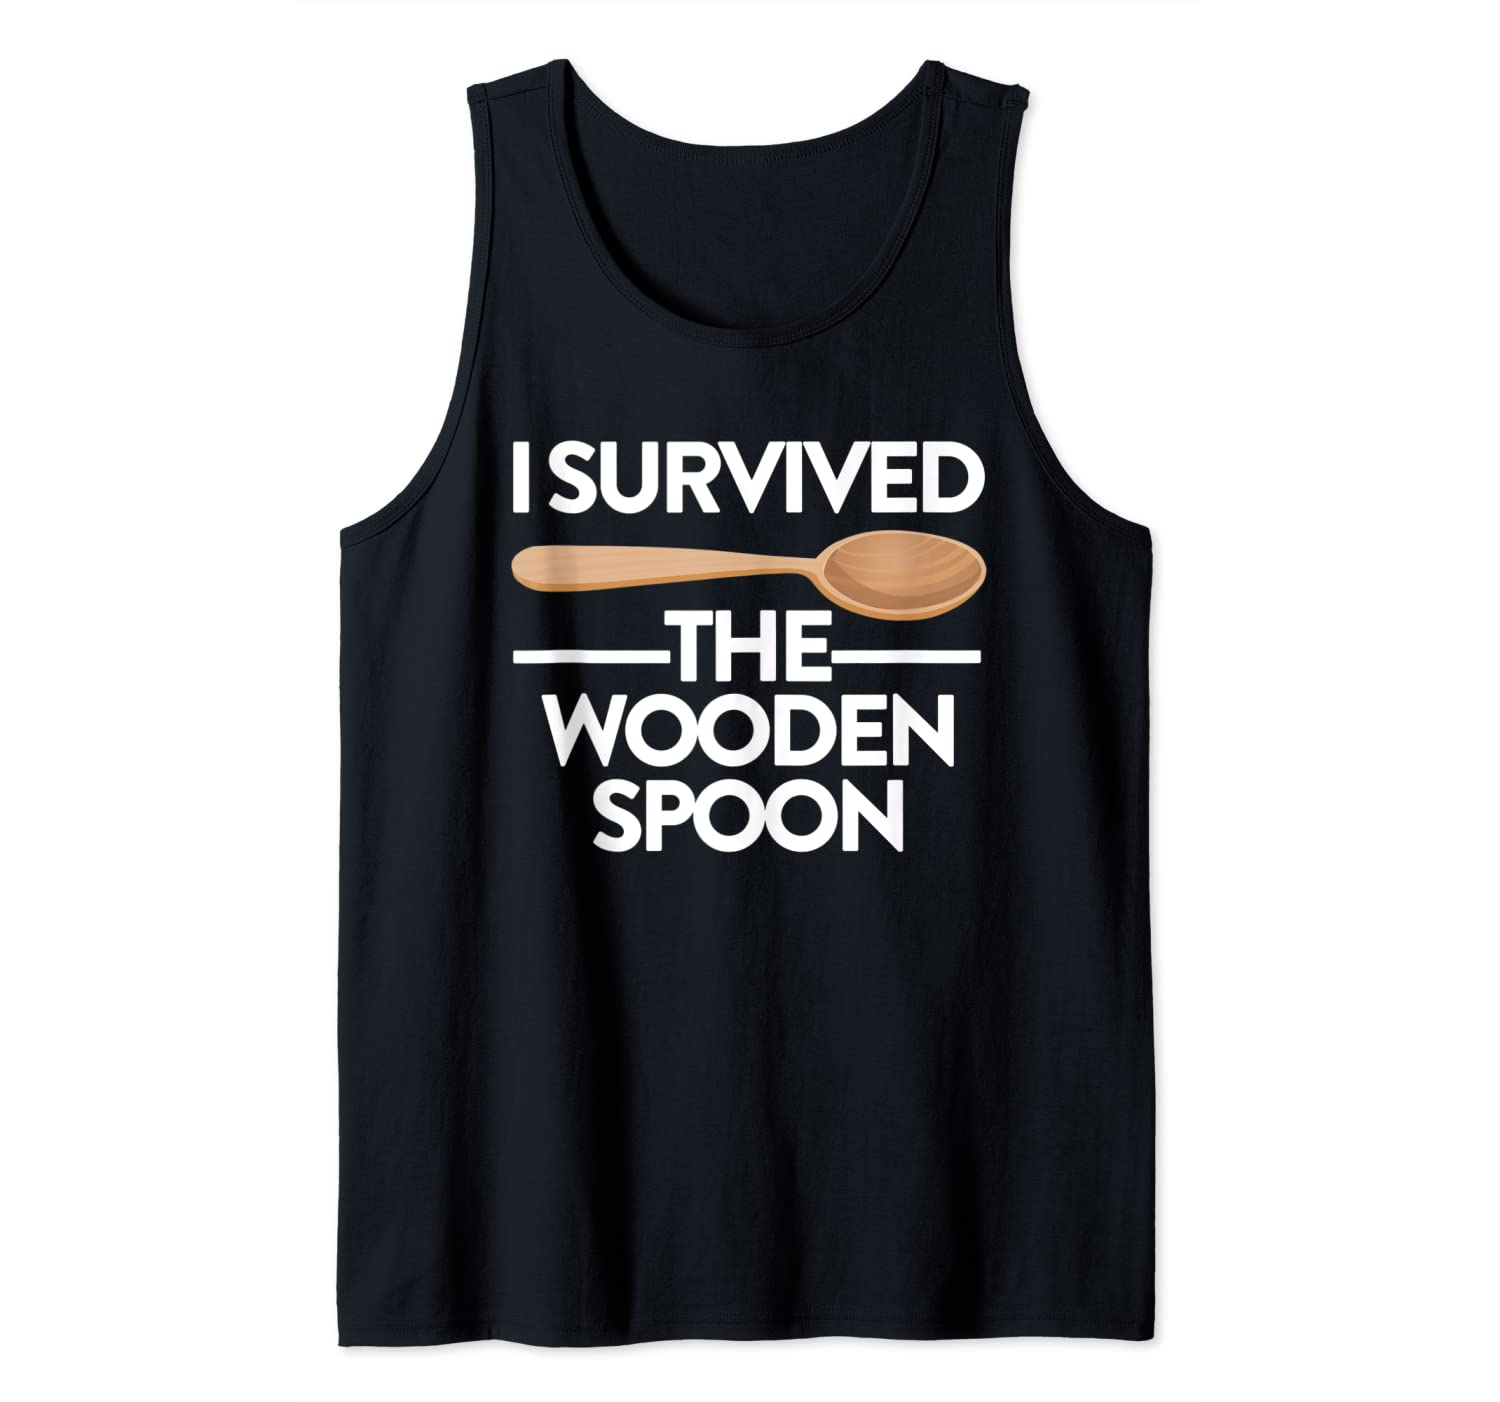 I Survived The Wooden Spoon - Wooden Spoon Survivor Gift Tank Top